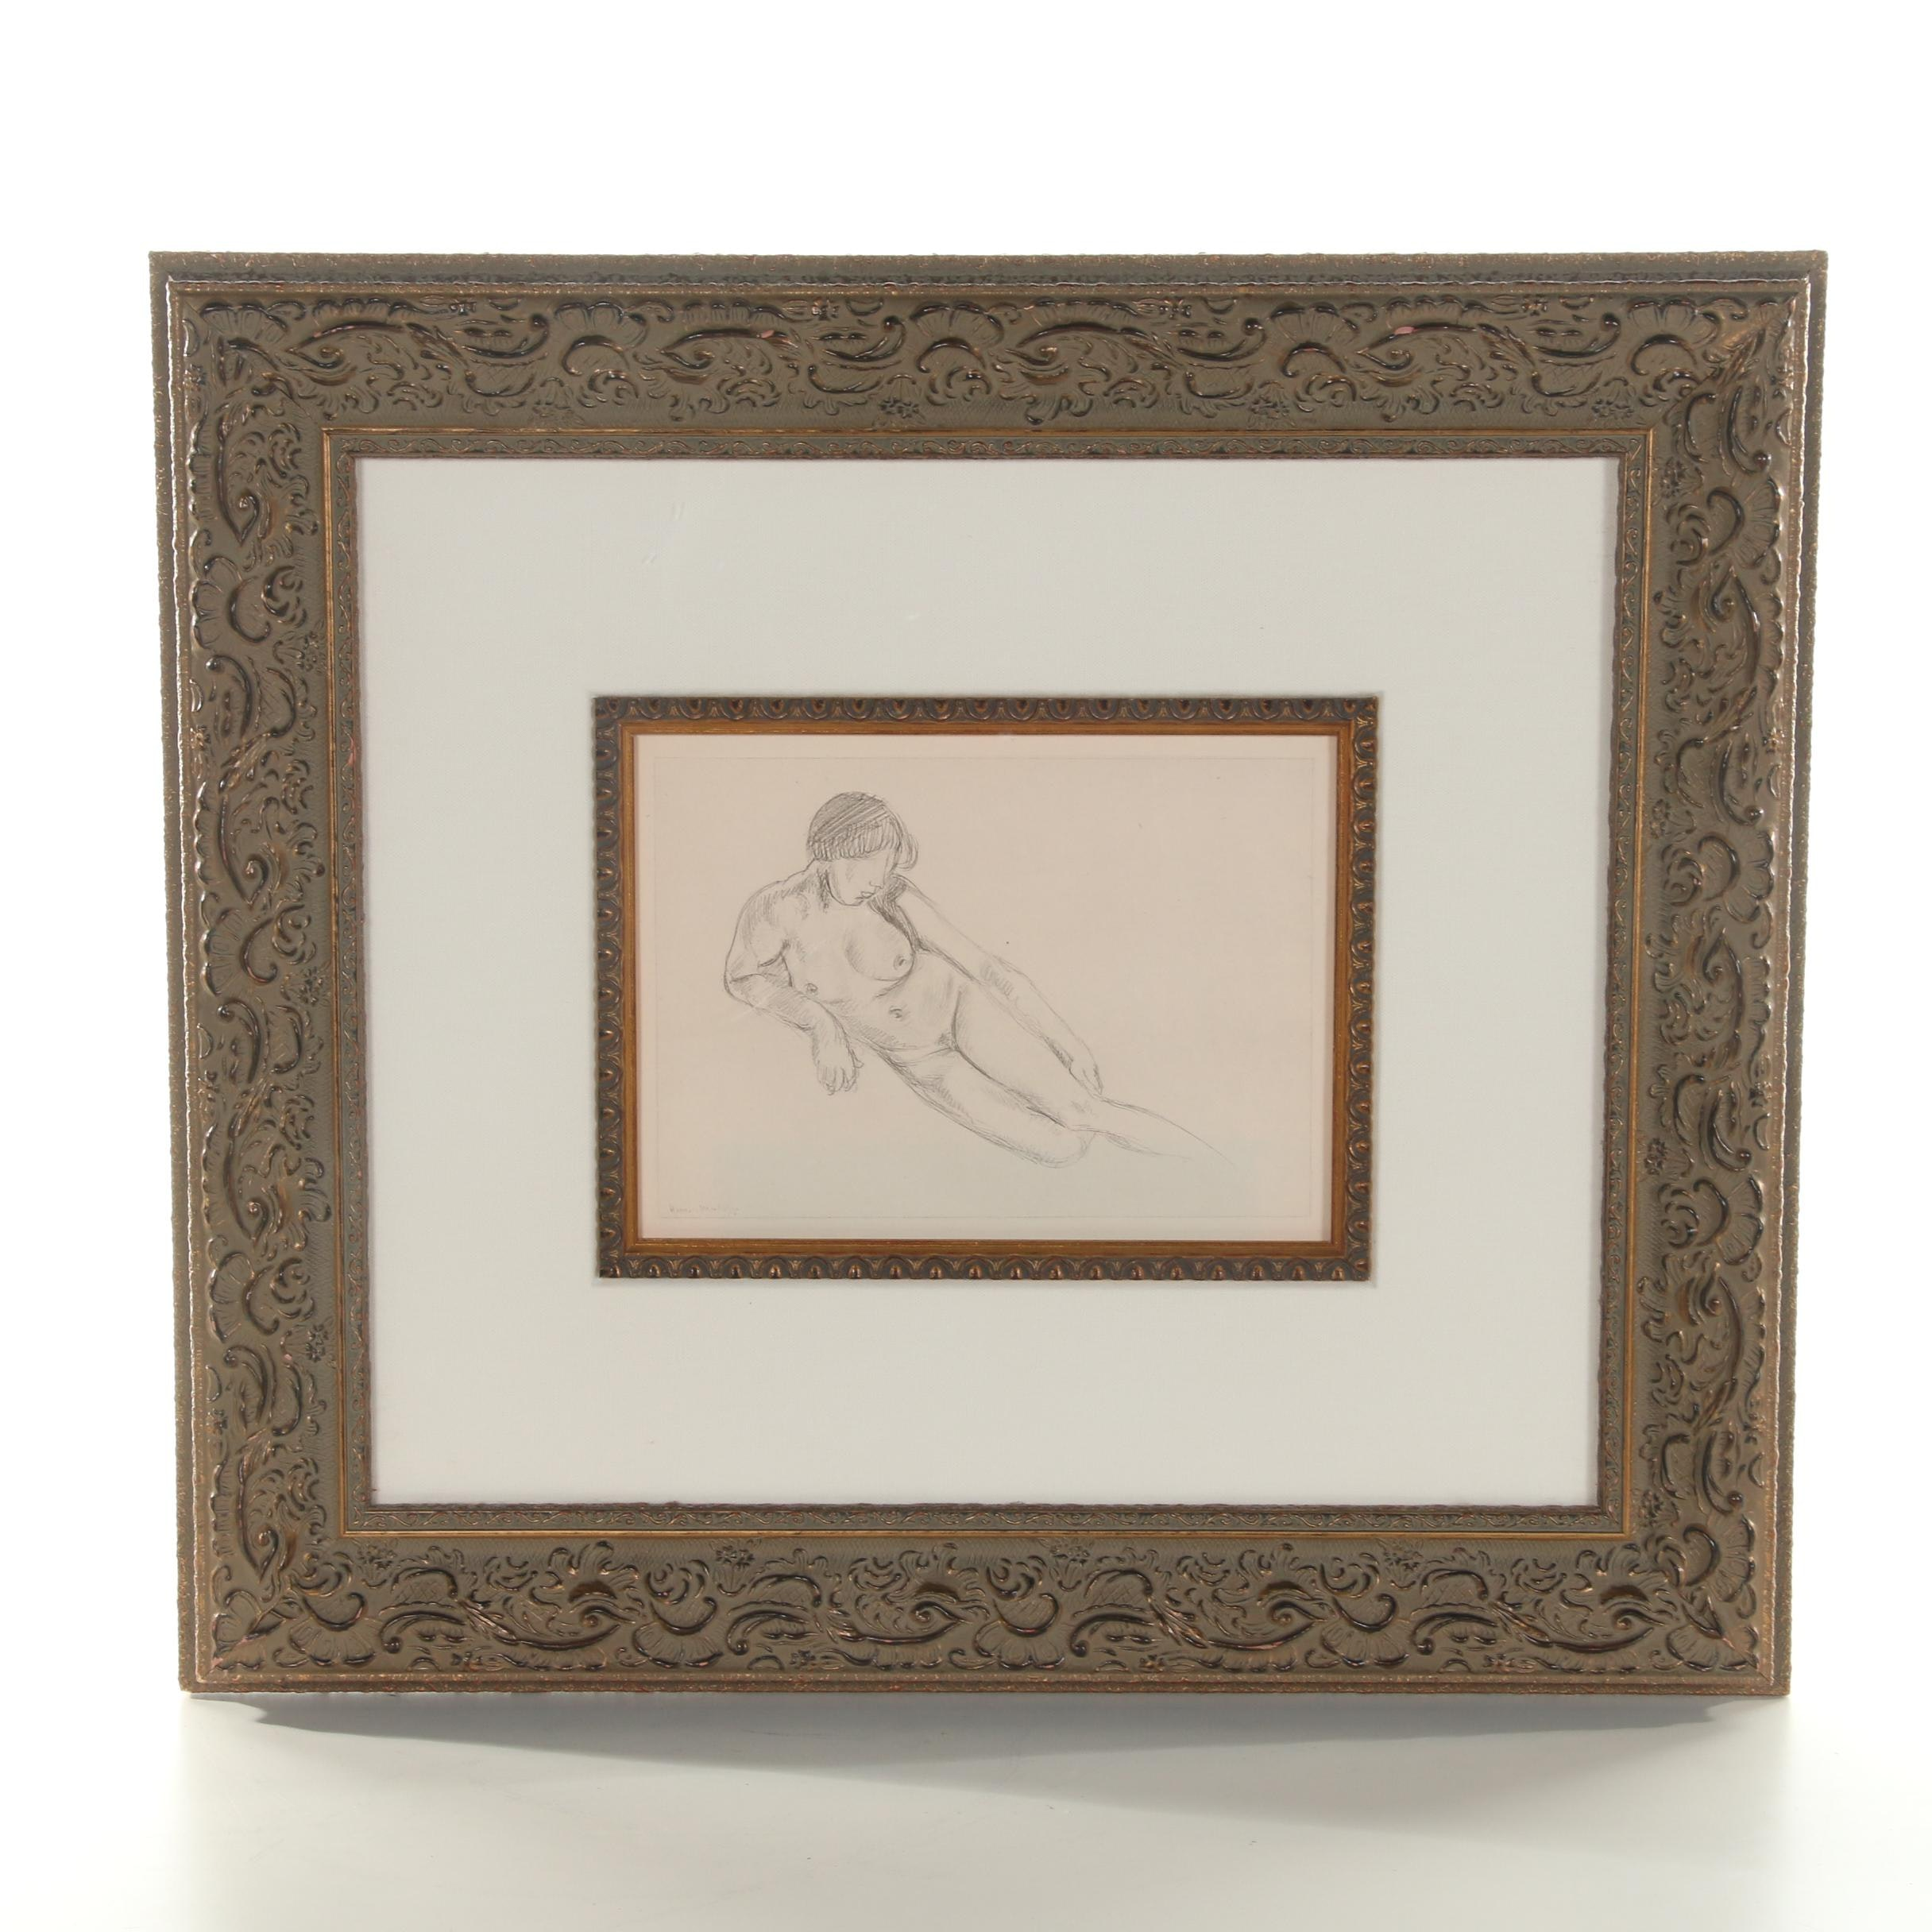 Reproduction Lithograph after Matisse